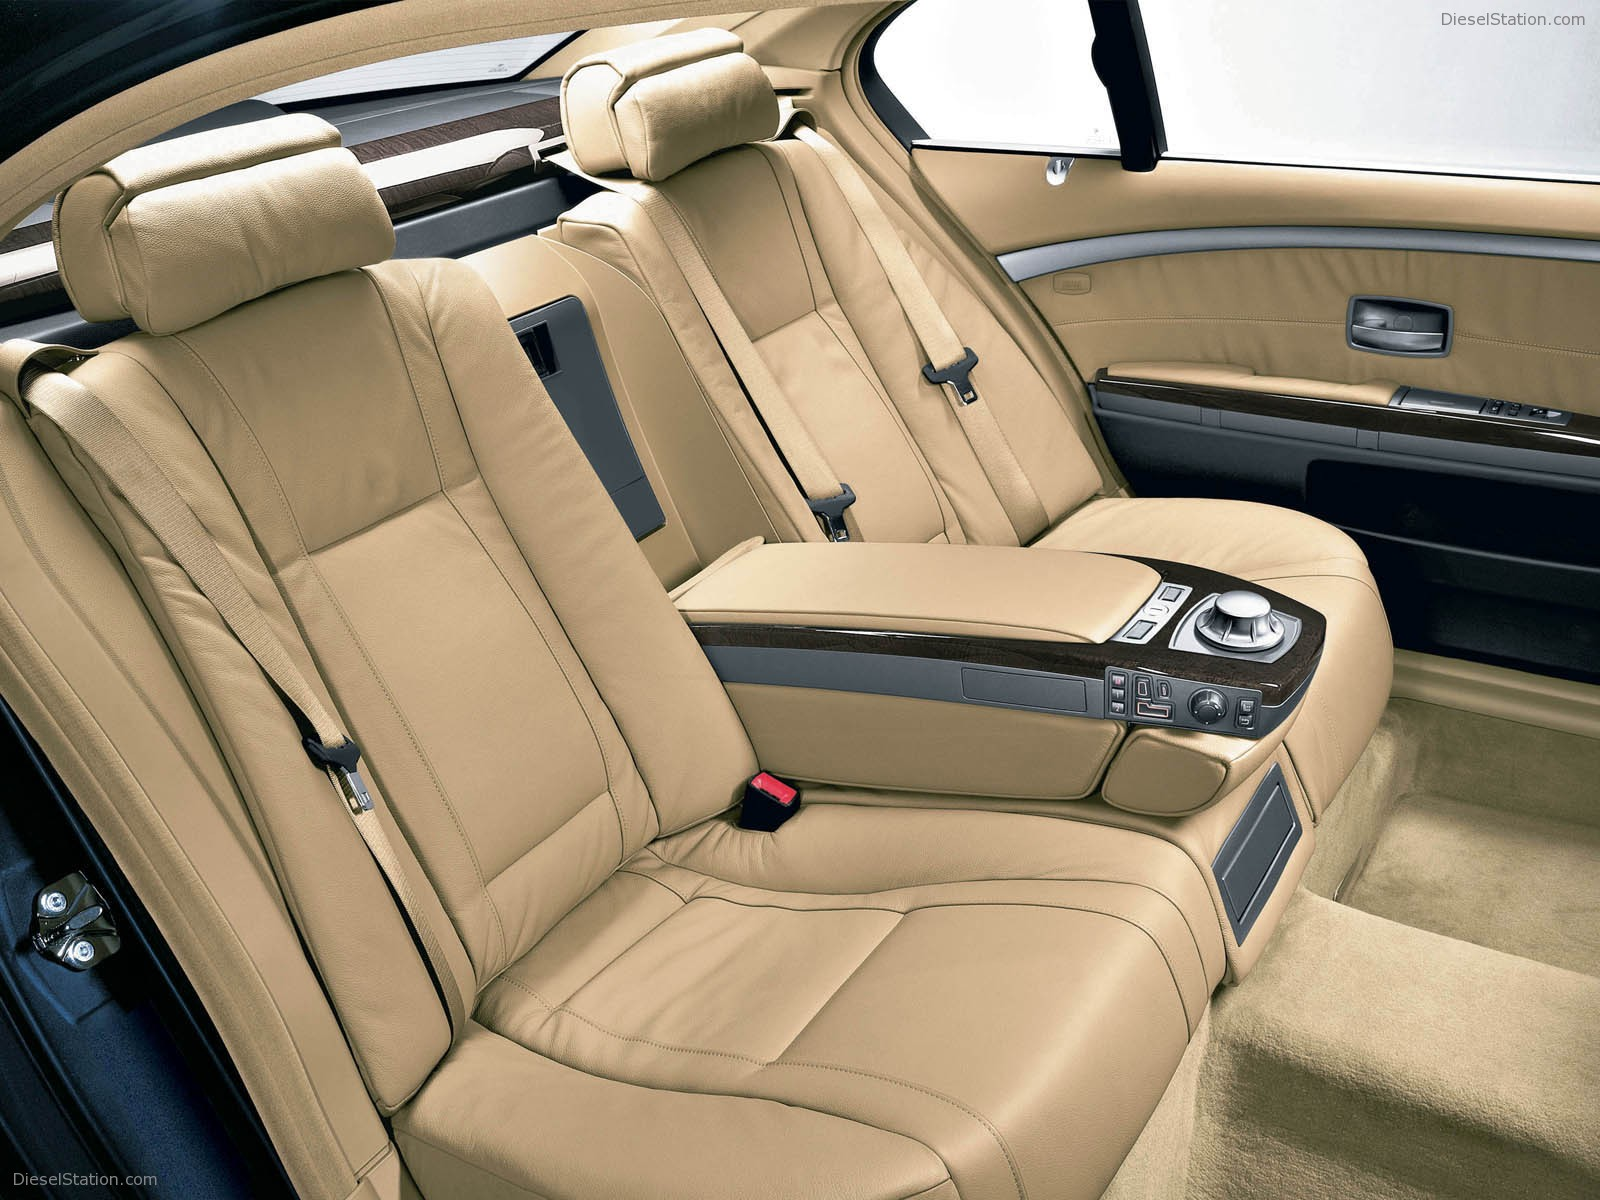 BMW 7 Series 2009 Interior Rear Cabin